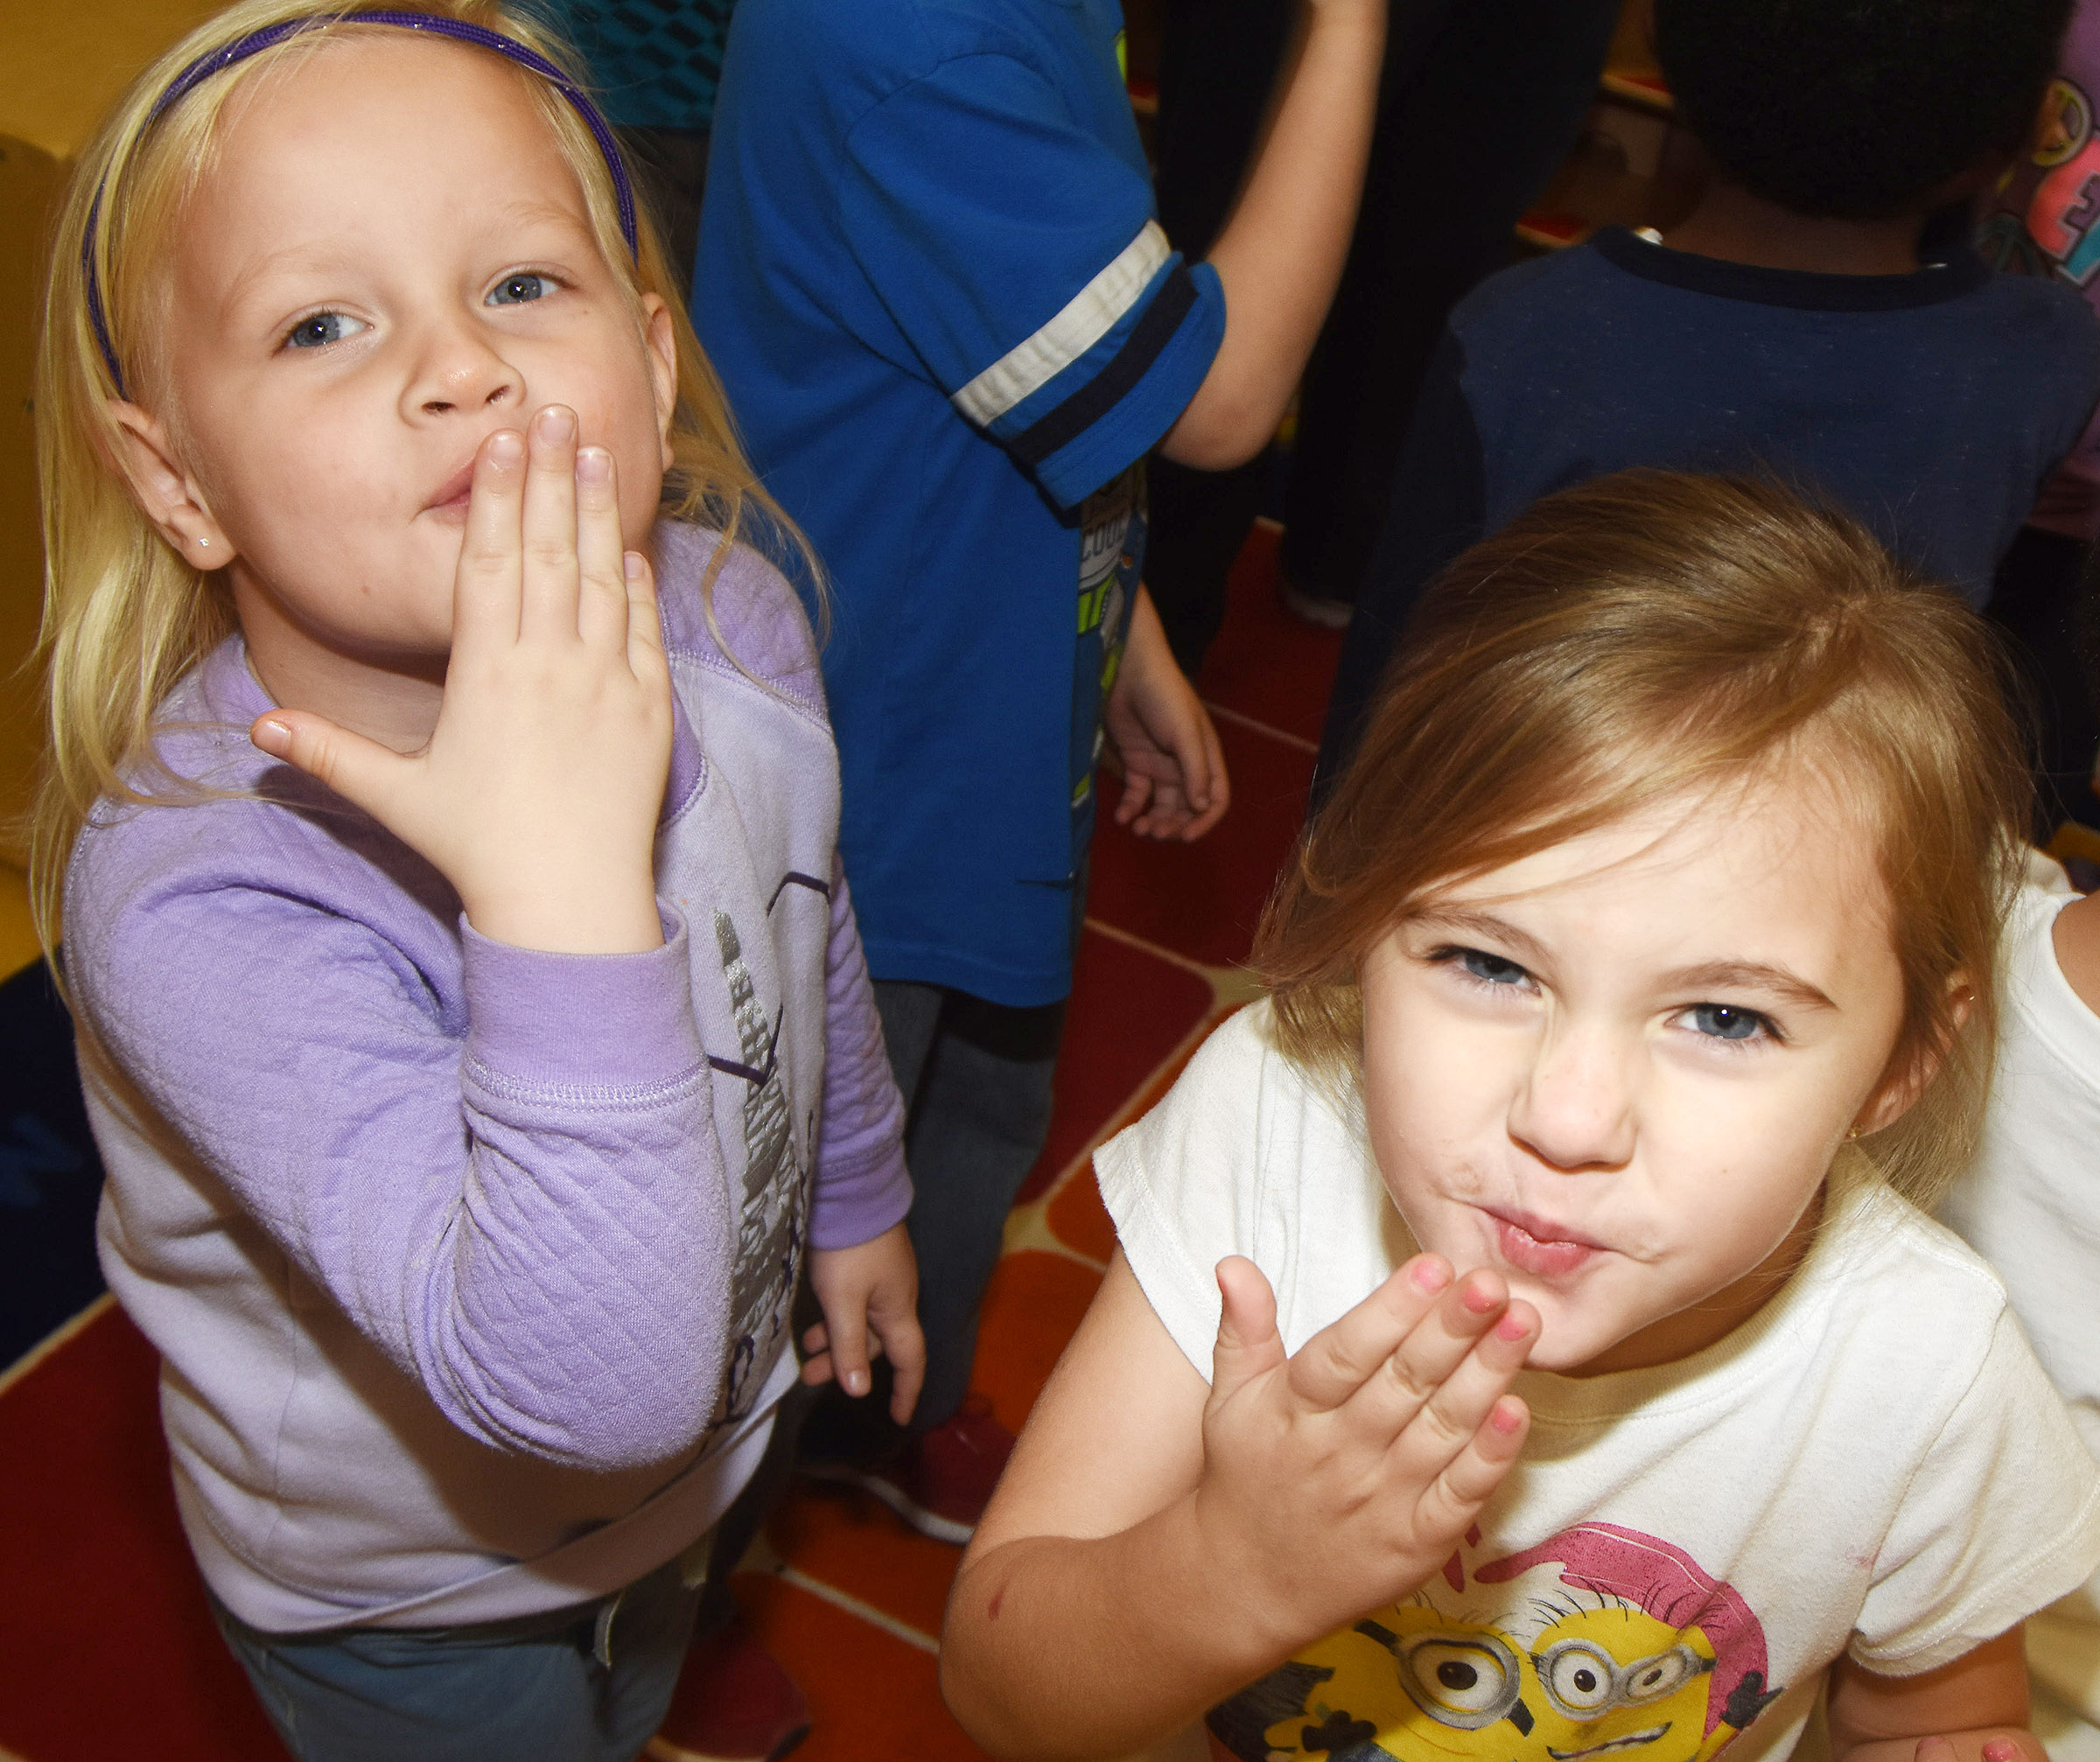 CES preschool students Kaitlyn Marples, at left, and Jackson Grigsby blow kisses as they sing and dance together.